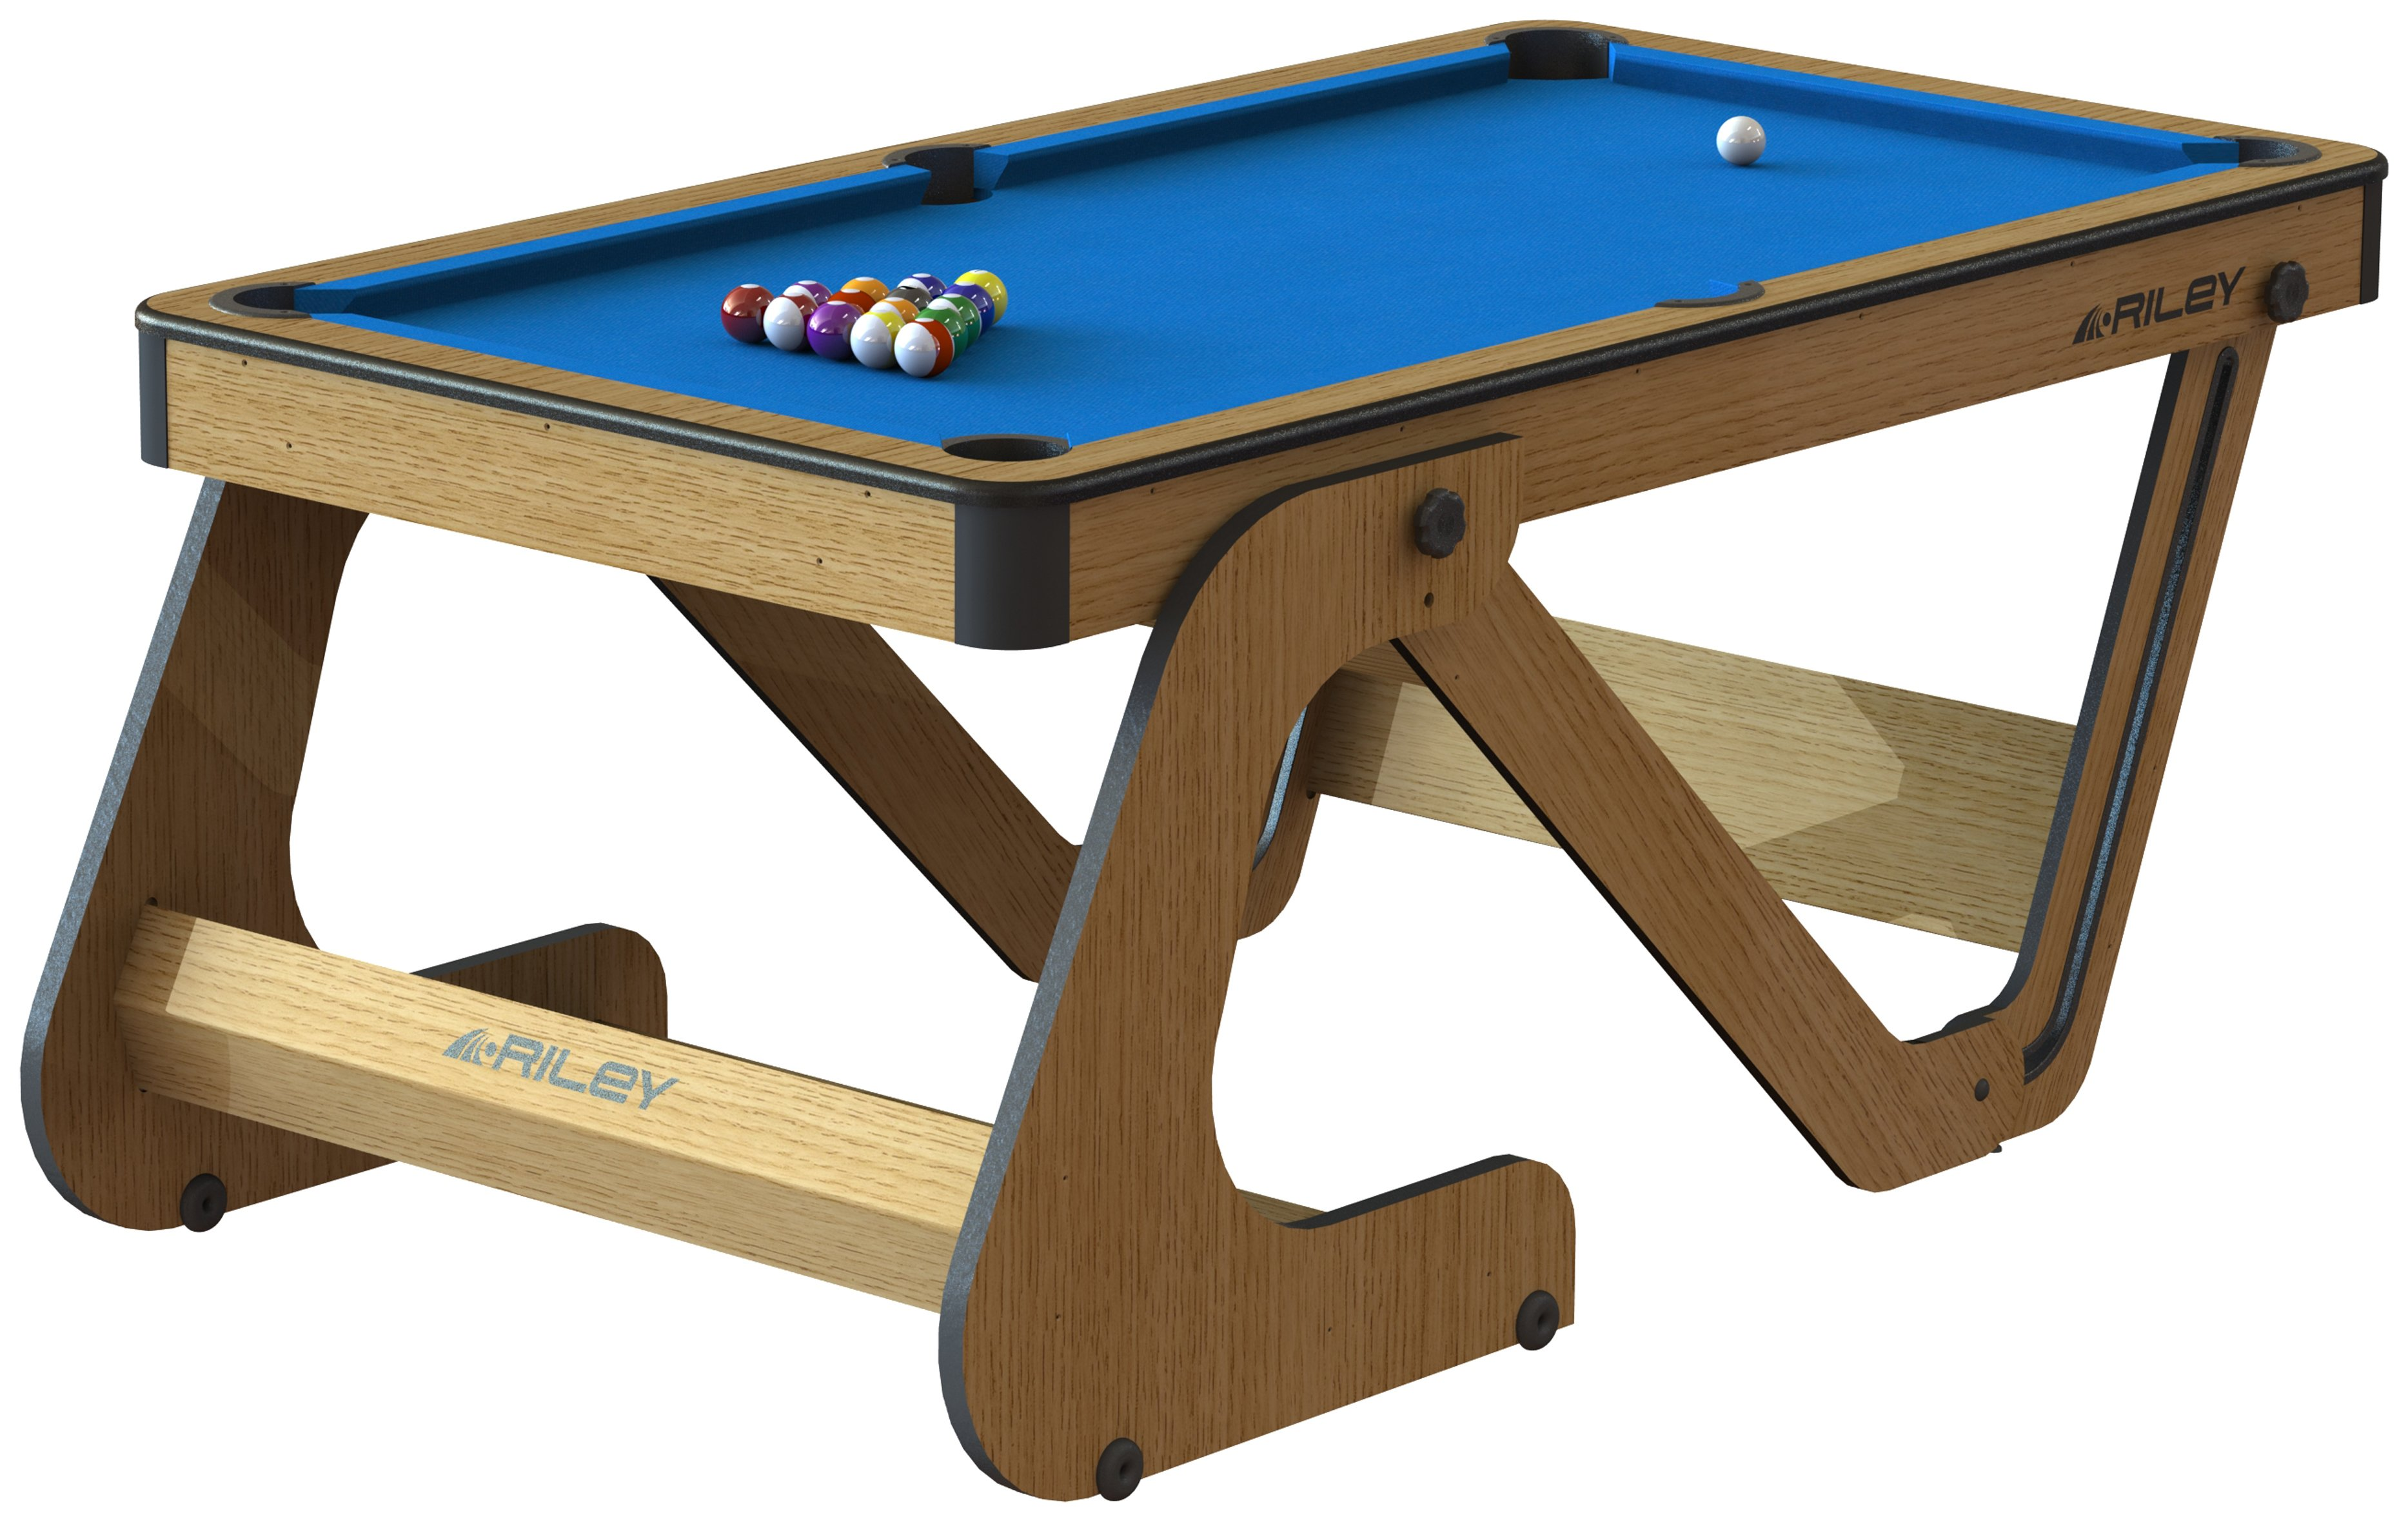 Riley 6ft Folding Pool Table with Dartboard